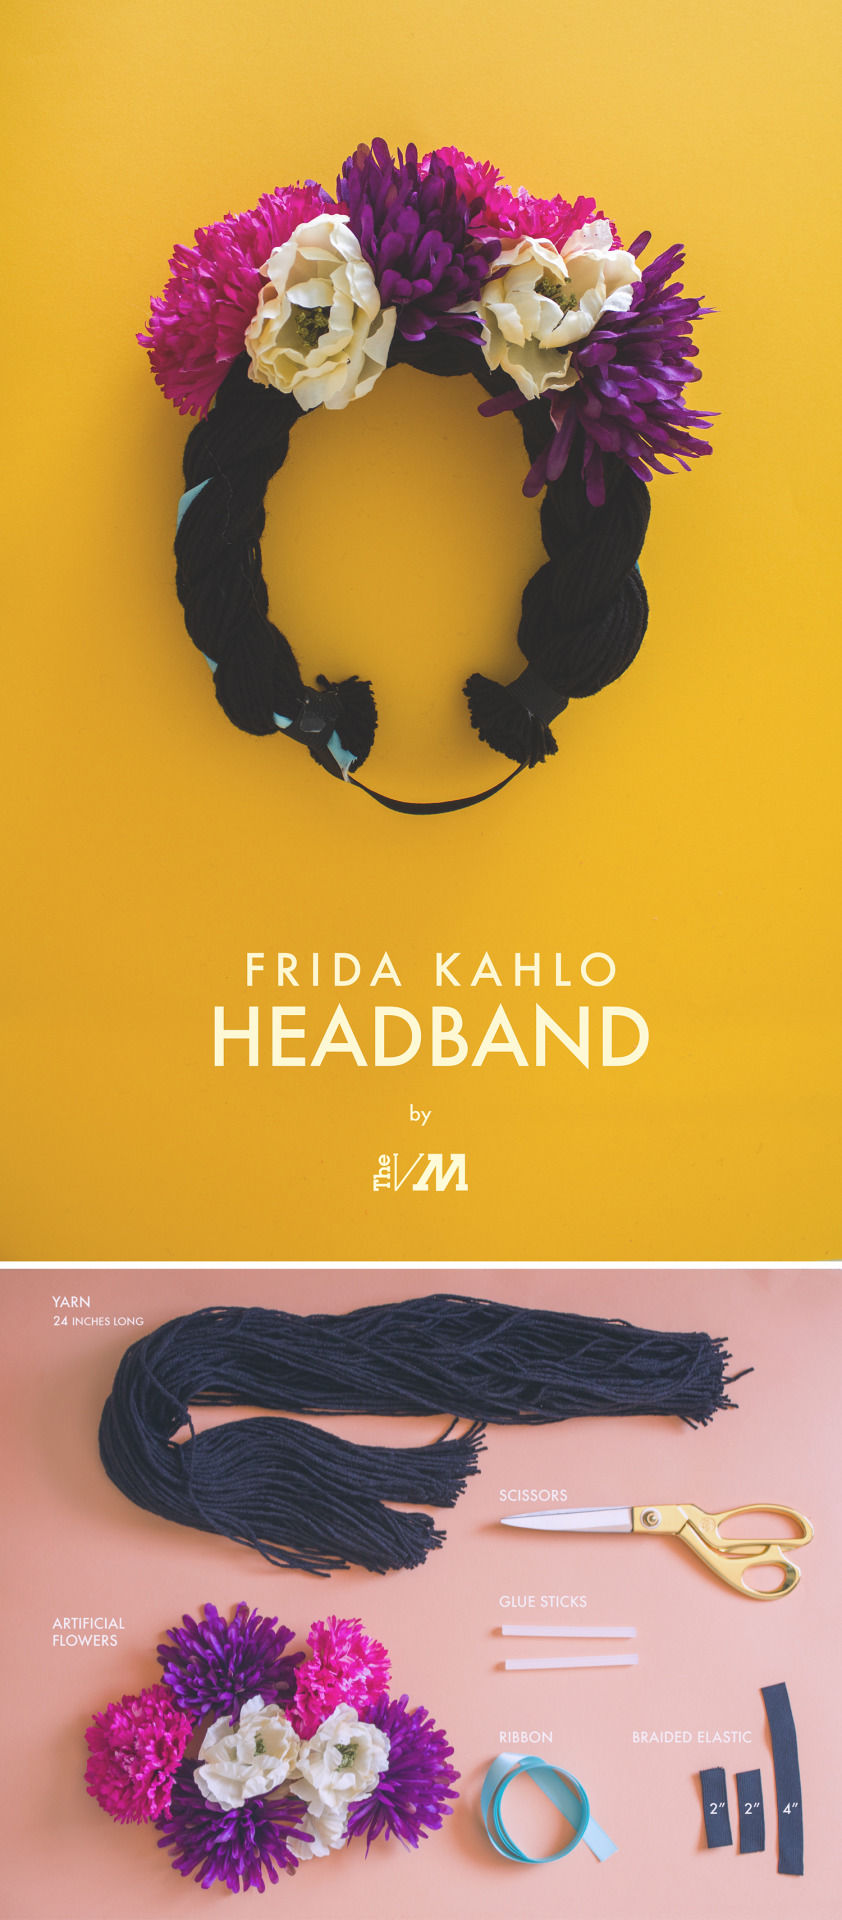 Frida Kahlo Headband Pictures Photos And Images For